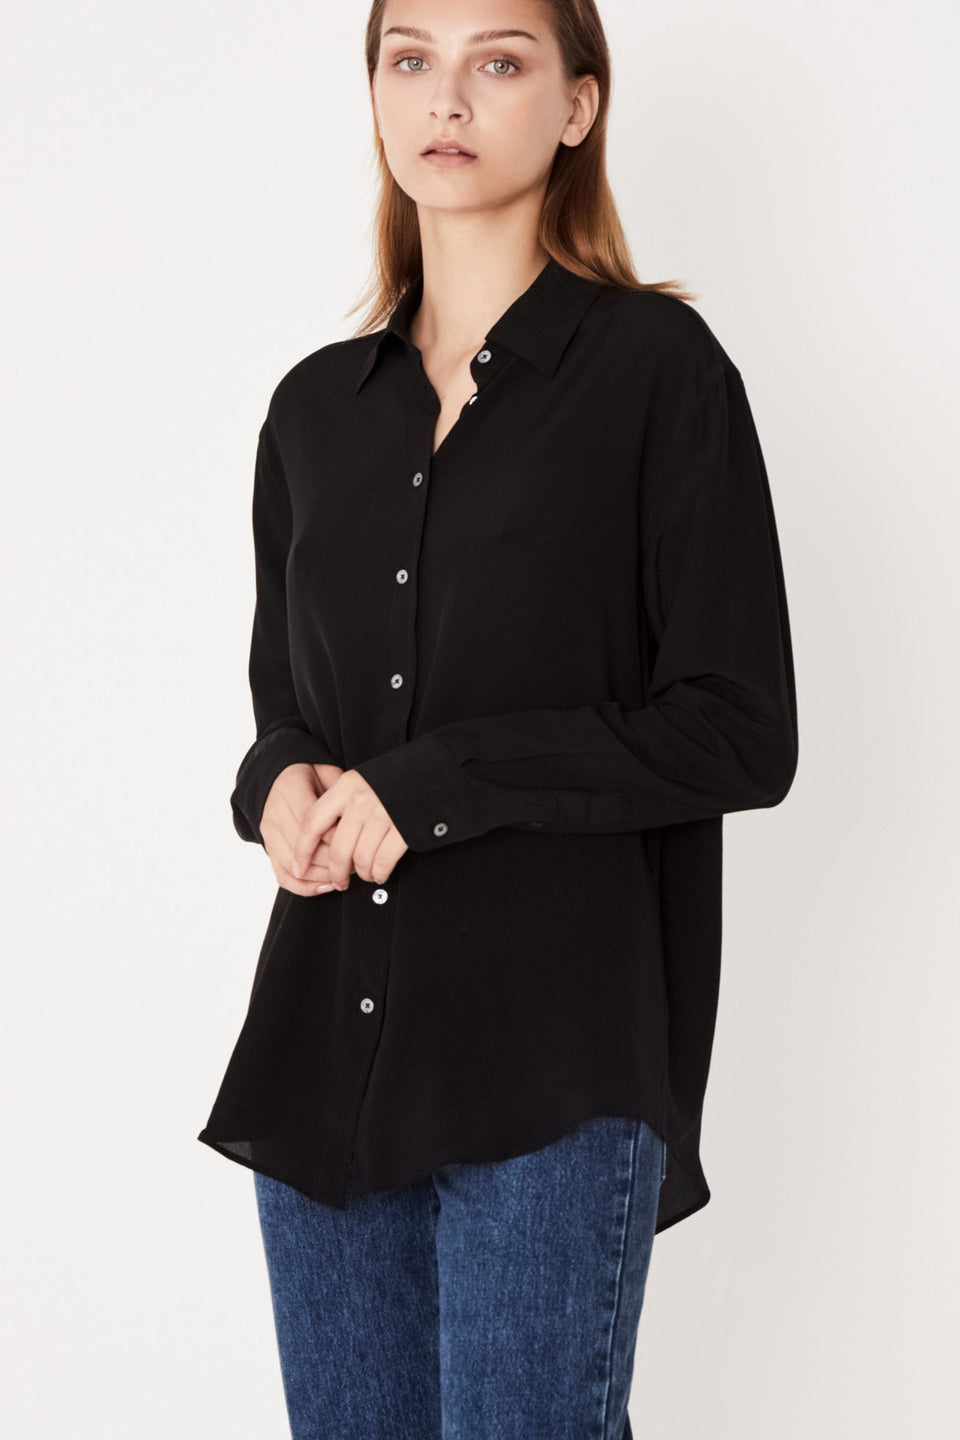 Essential Silk Shirt- Black